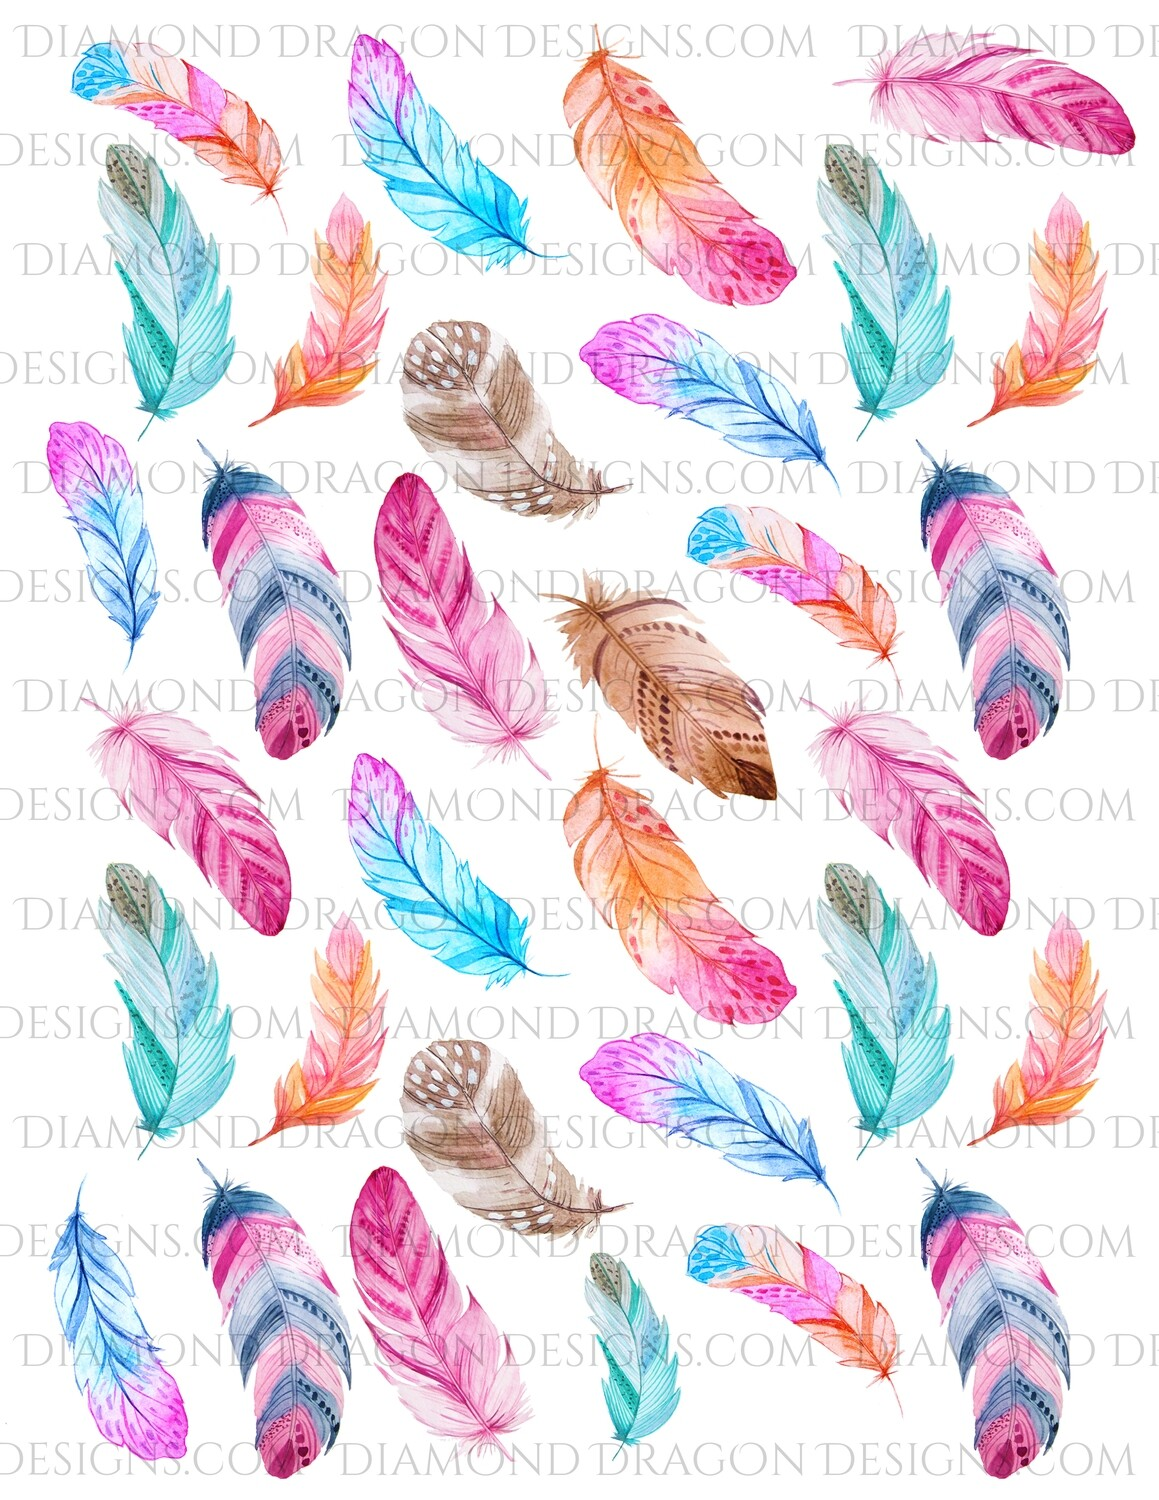 Full Page -  Watercolor Feathers, Colorful Feather, Full Page Design - Waterslide